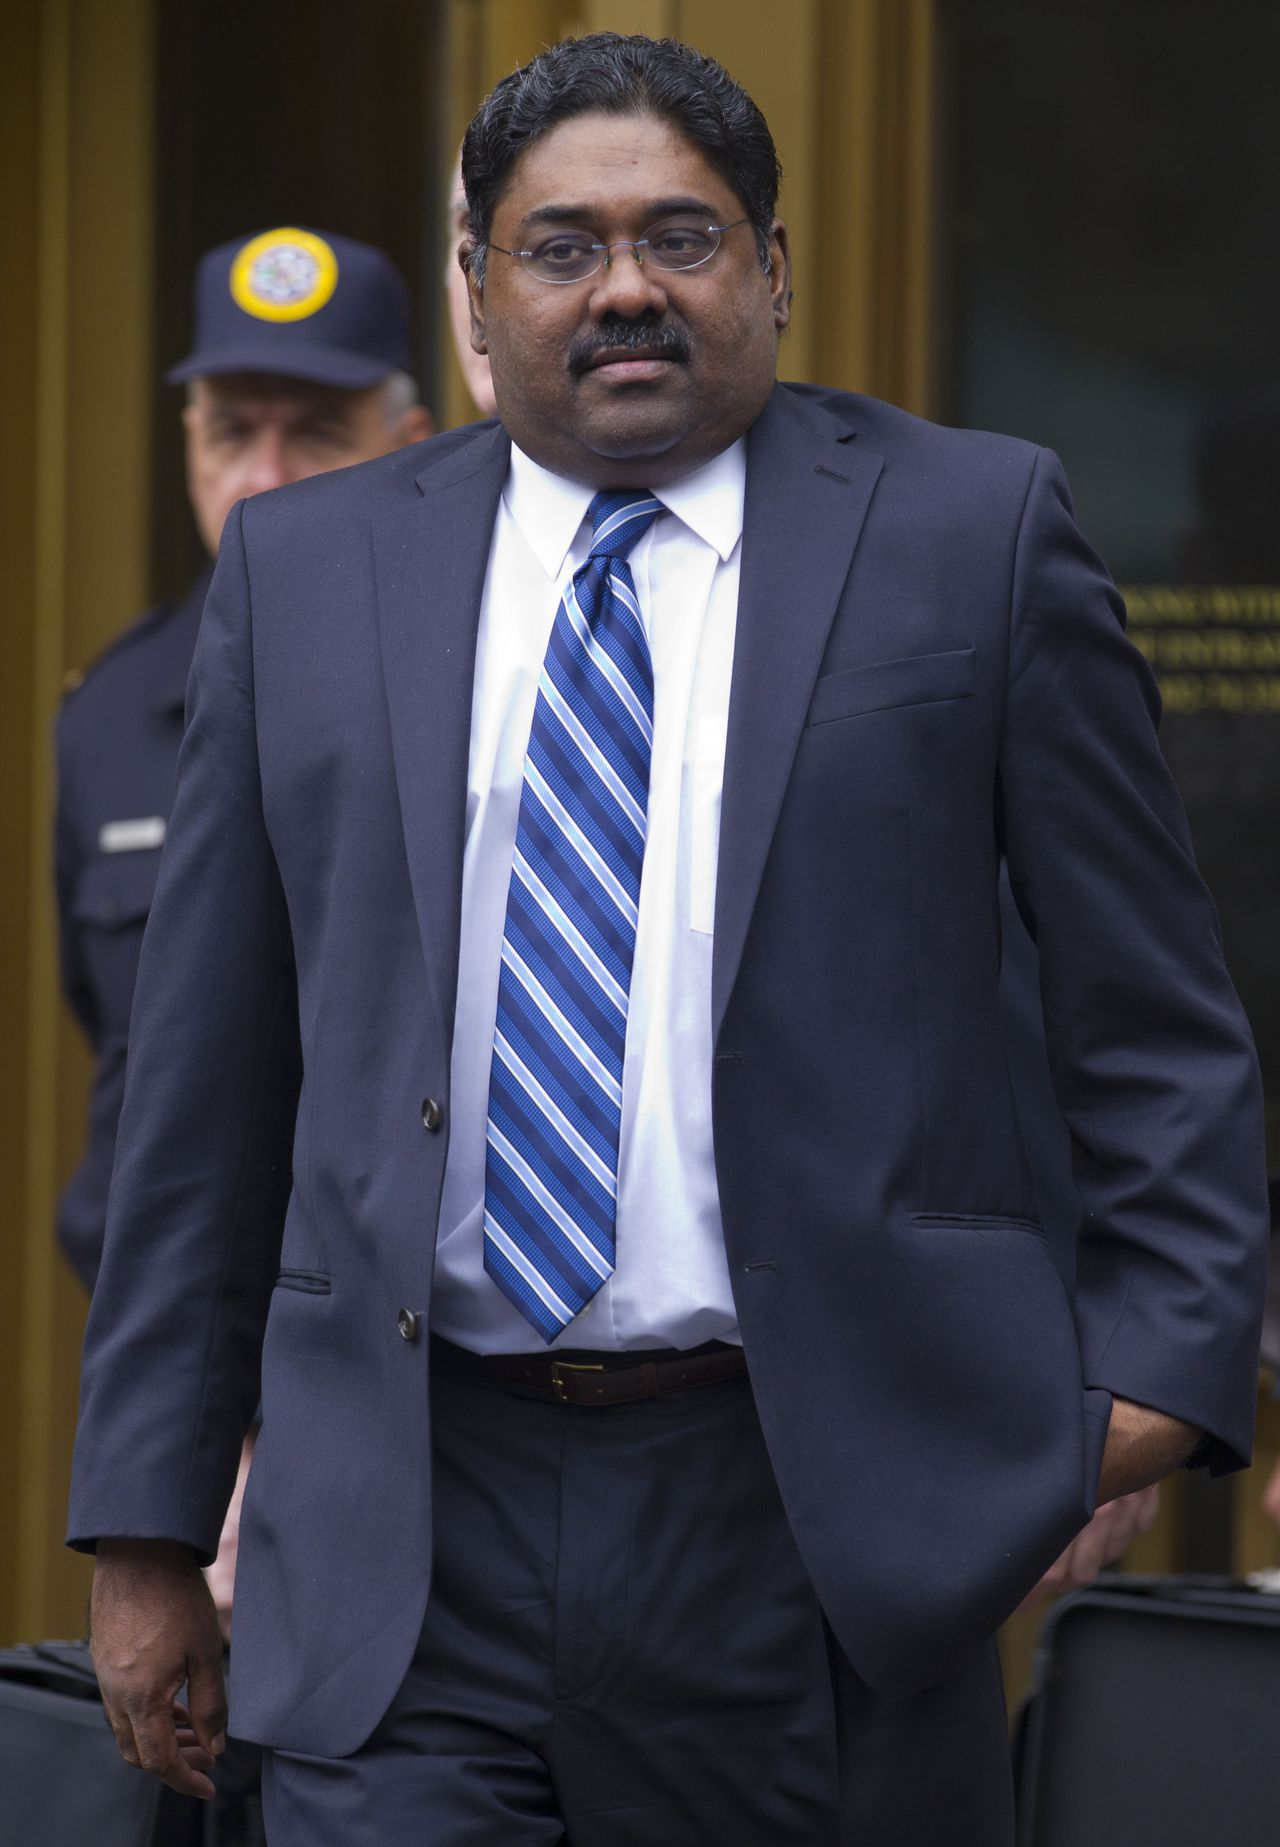 Raj Rajaratnam, co-founder of Galleon Group LLC, leaves Federal Court after his sentencing on Thursday, Oct. 13, 2011 in New York. (AP Photo/Jin Lee)